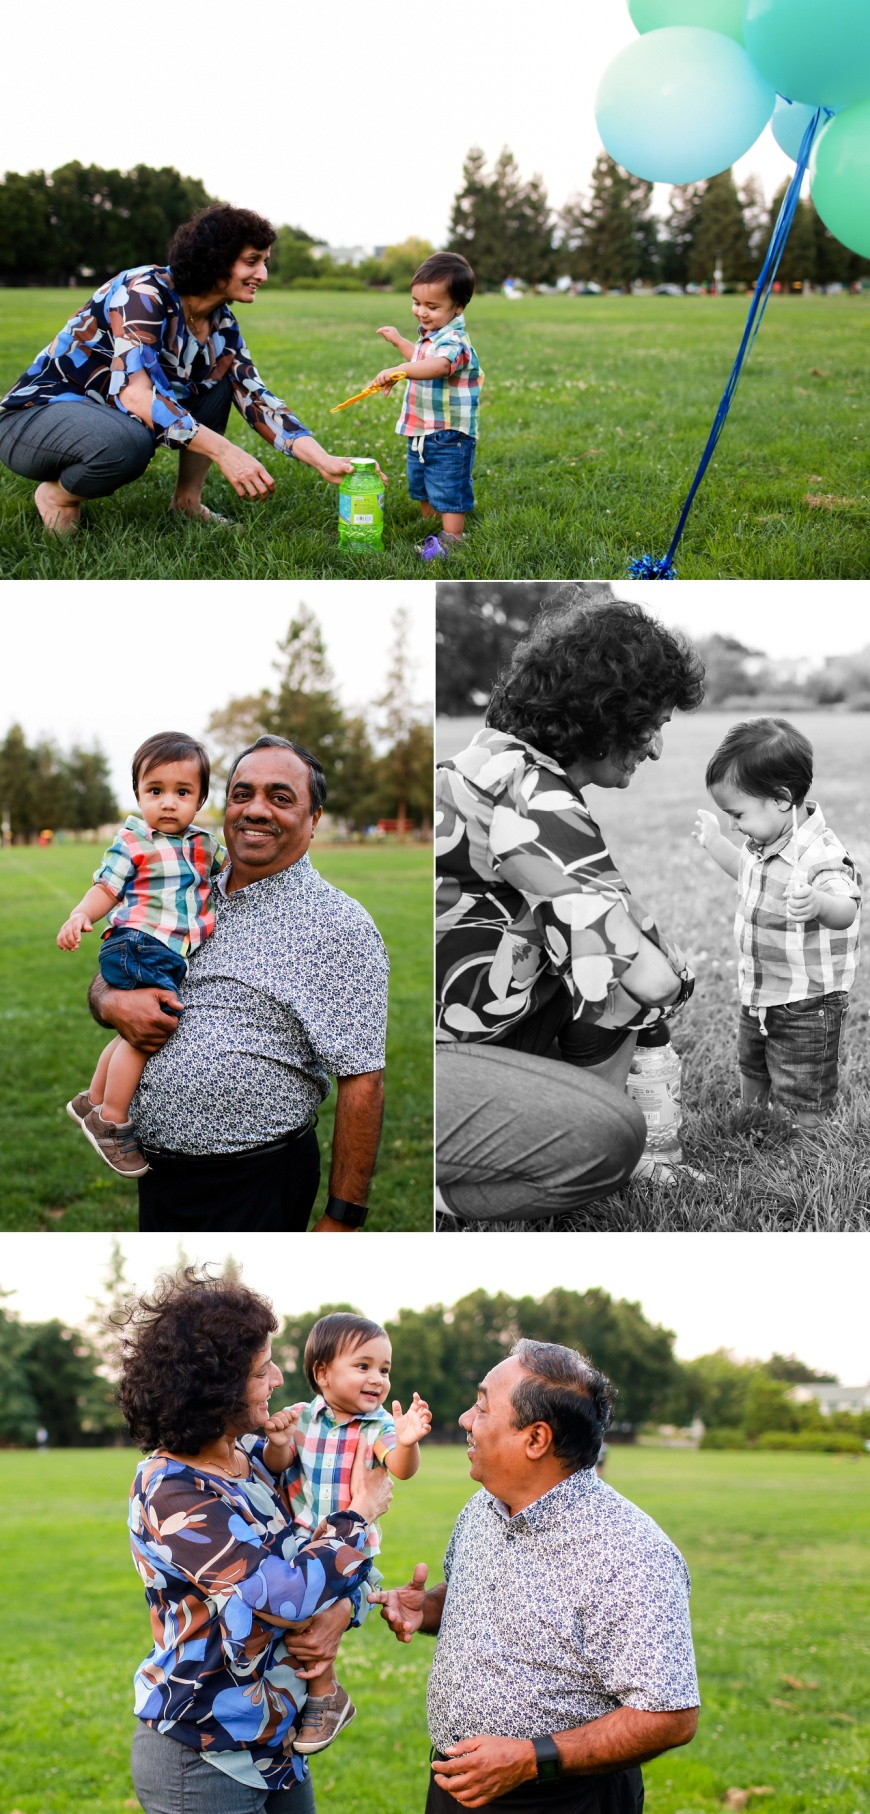 Jollyman-Park-Cupertino-Family-Photographer_1028.jpg